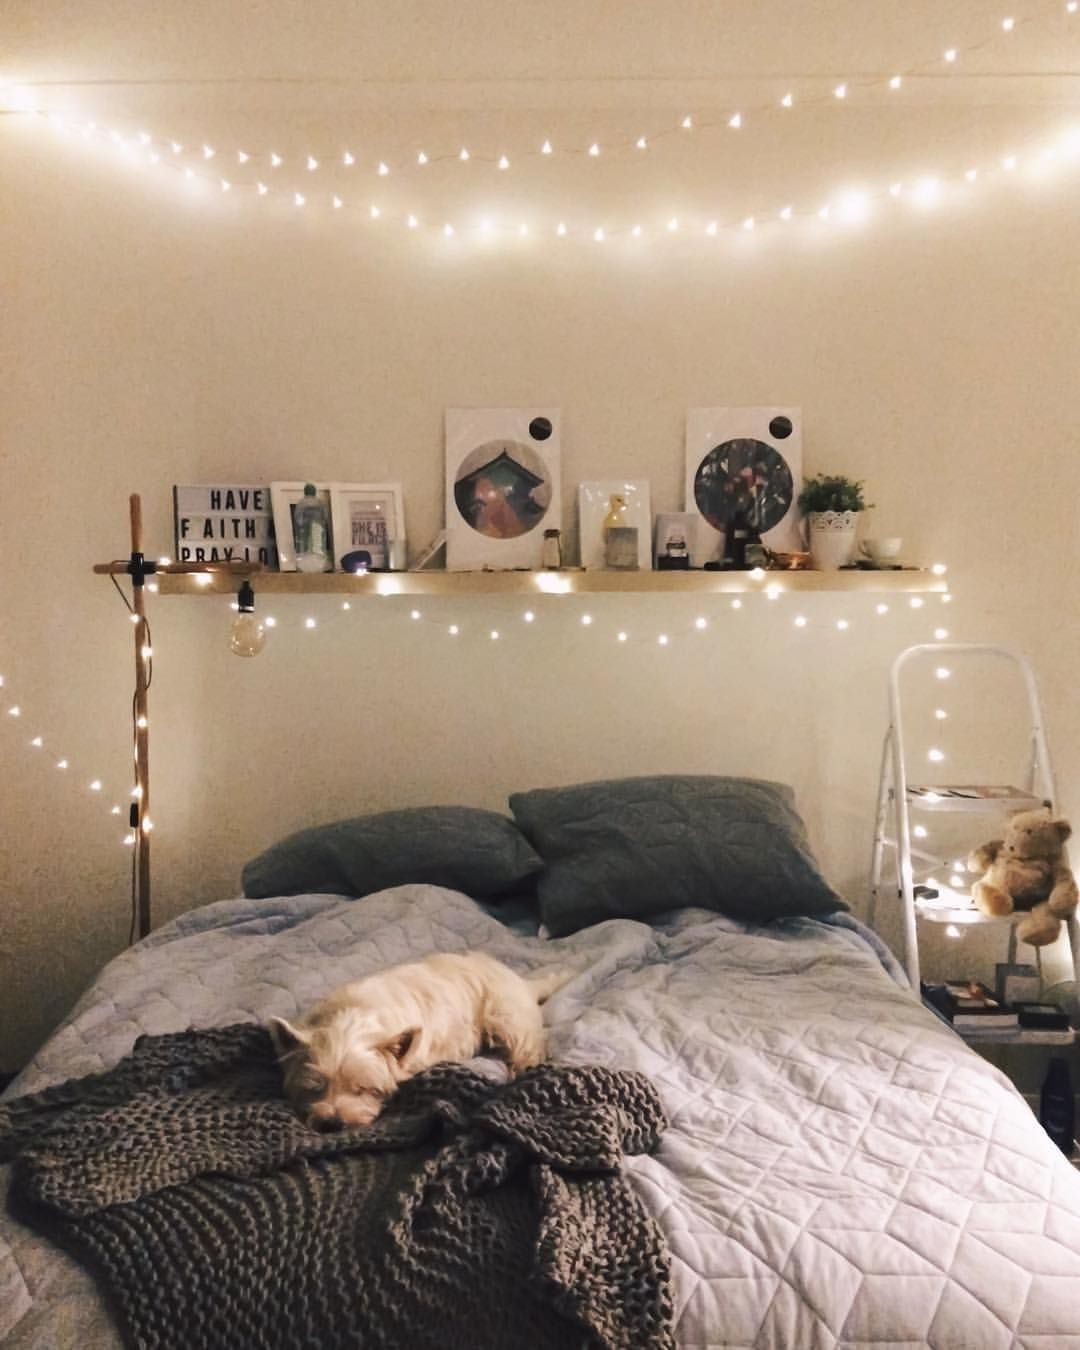 Pin By Tayah On Home Comfortable Bedroom Bedroom Interior Small Room Bedroom